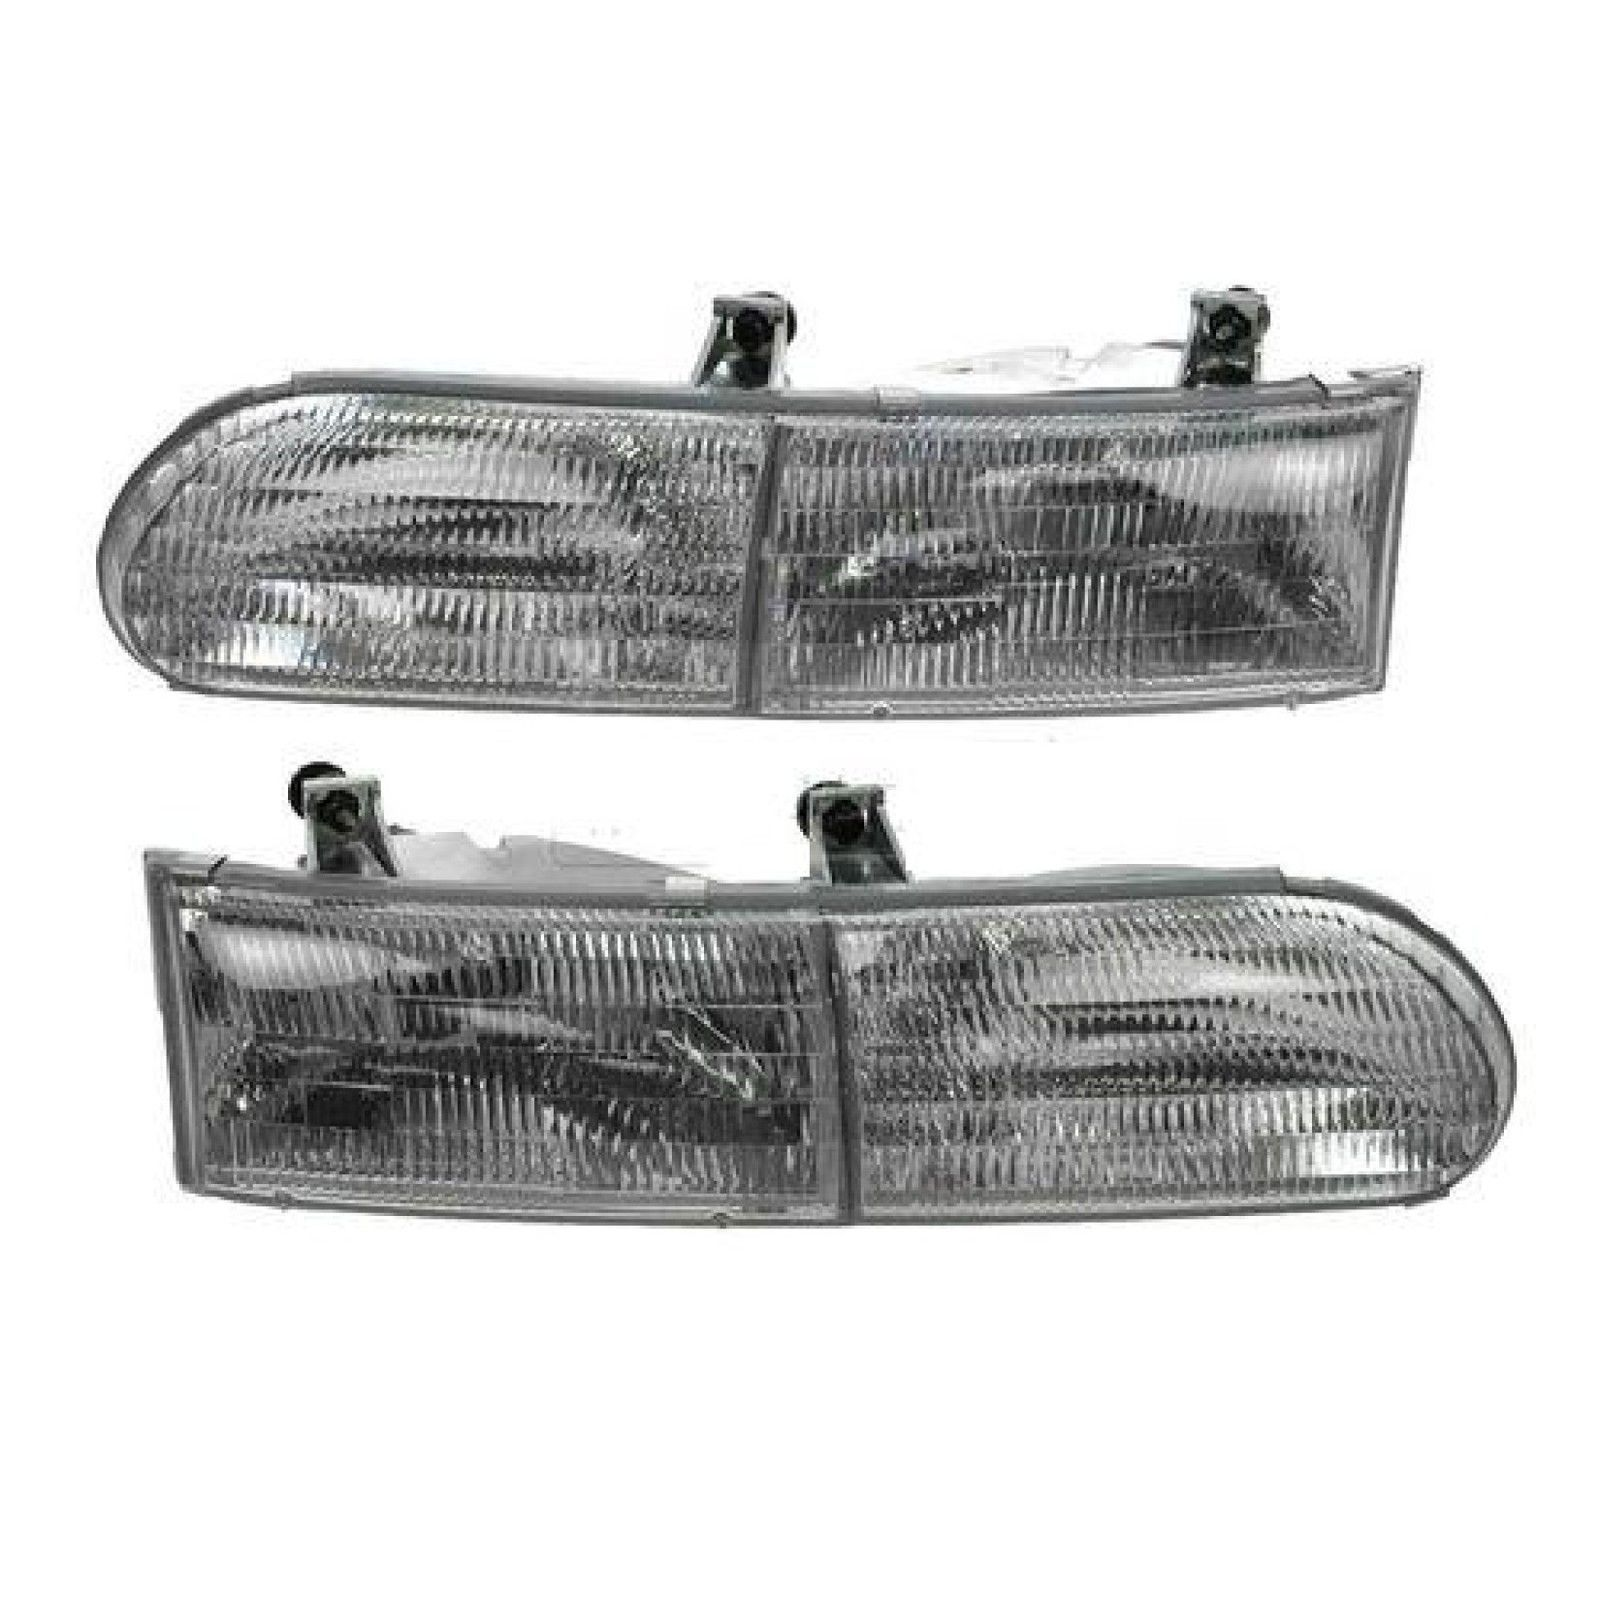 Replacement Front Headlight with Bulb Gulf Stream Sun Voyager 1999-2004 RV Motorhome Right Passenger